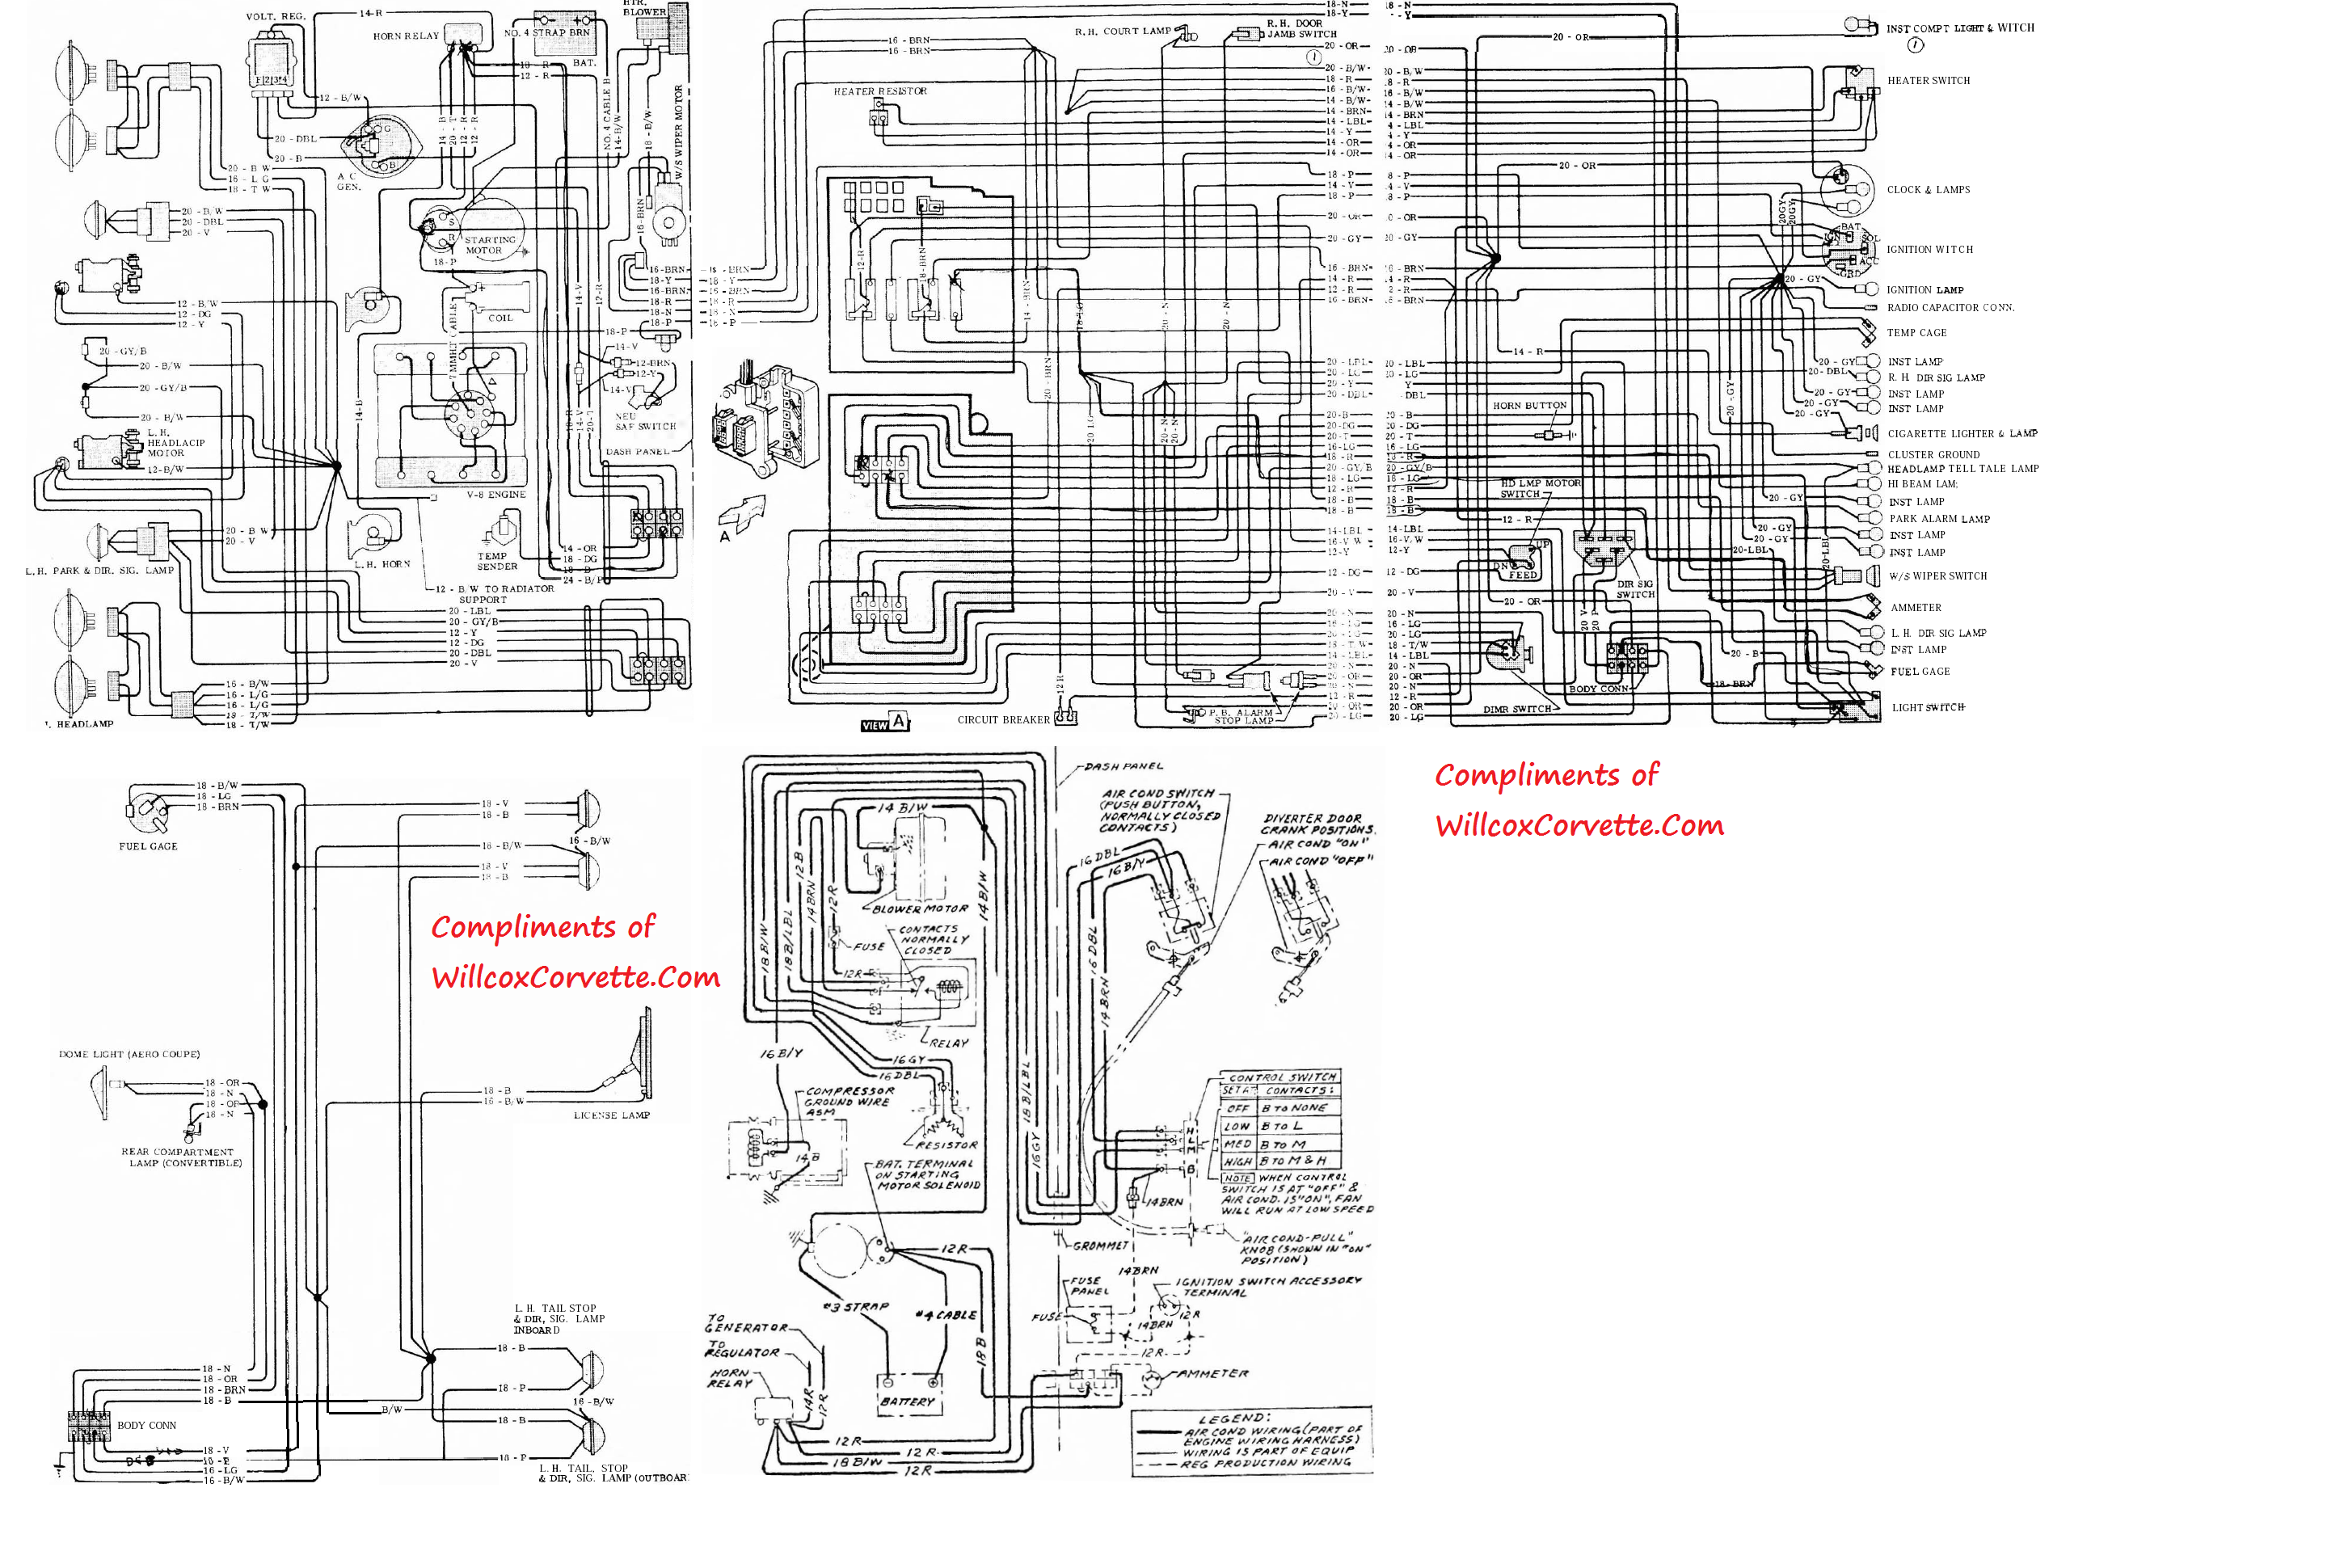 wiring diagram for 1980 corvette